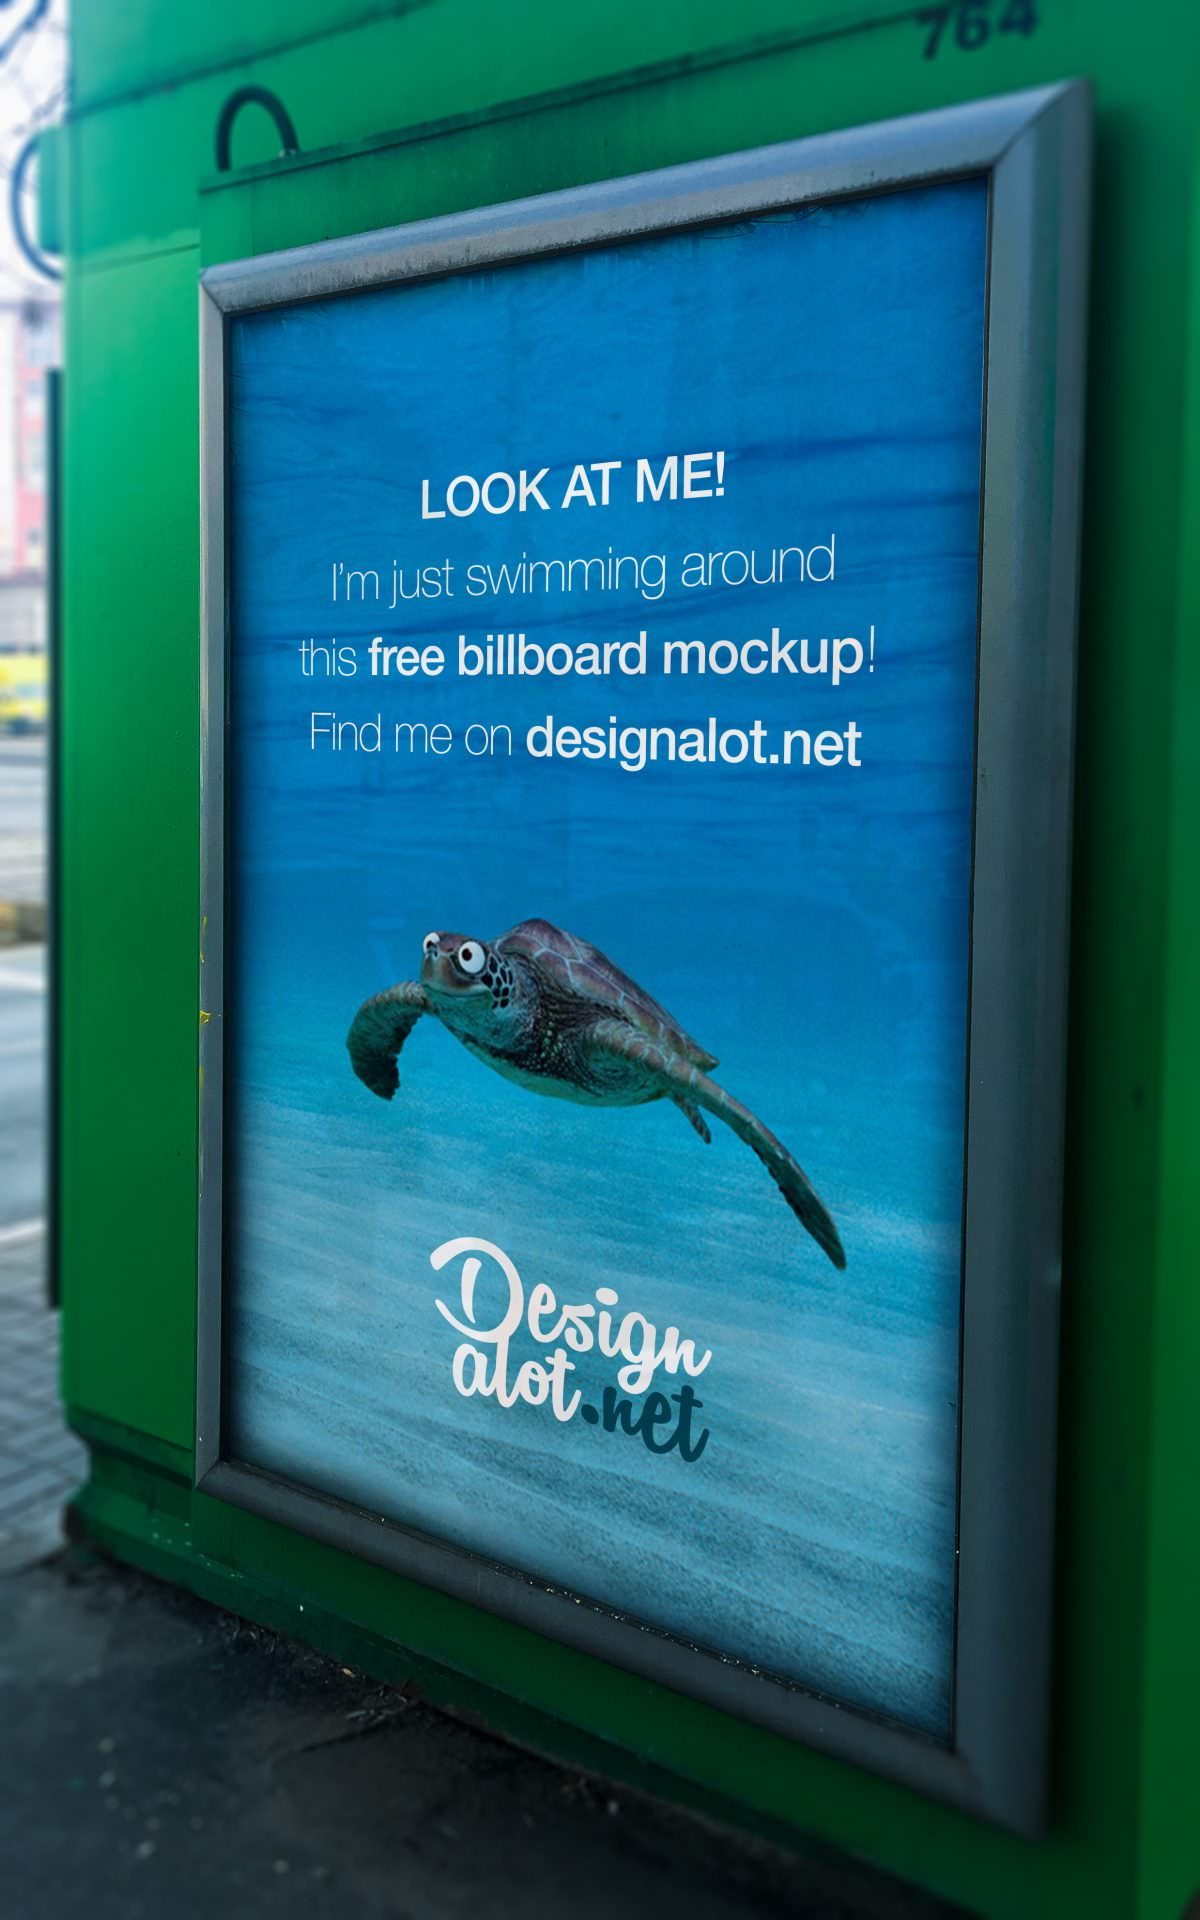 News-Stand-Outdoor-Advertising-Space-designalot.net